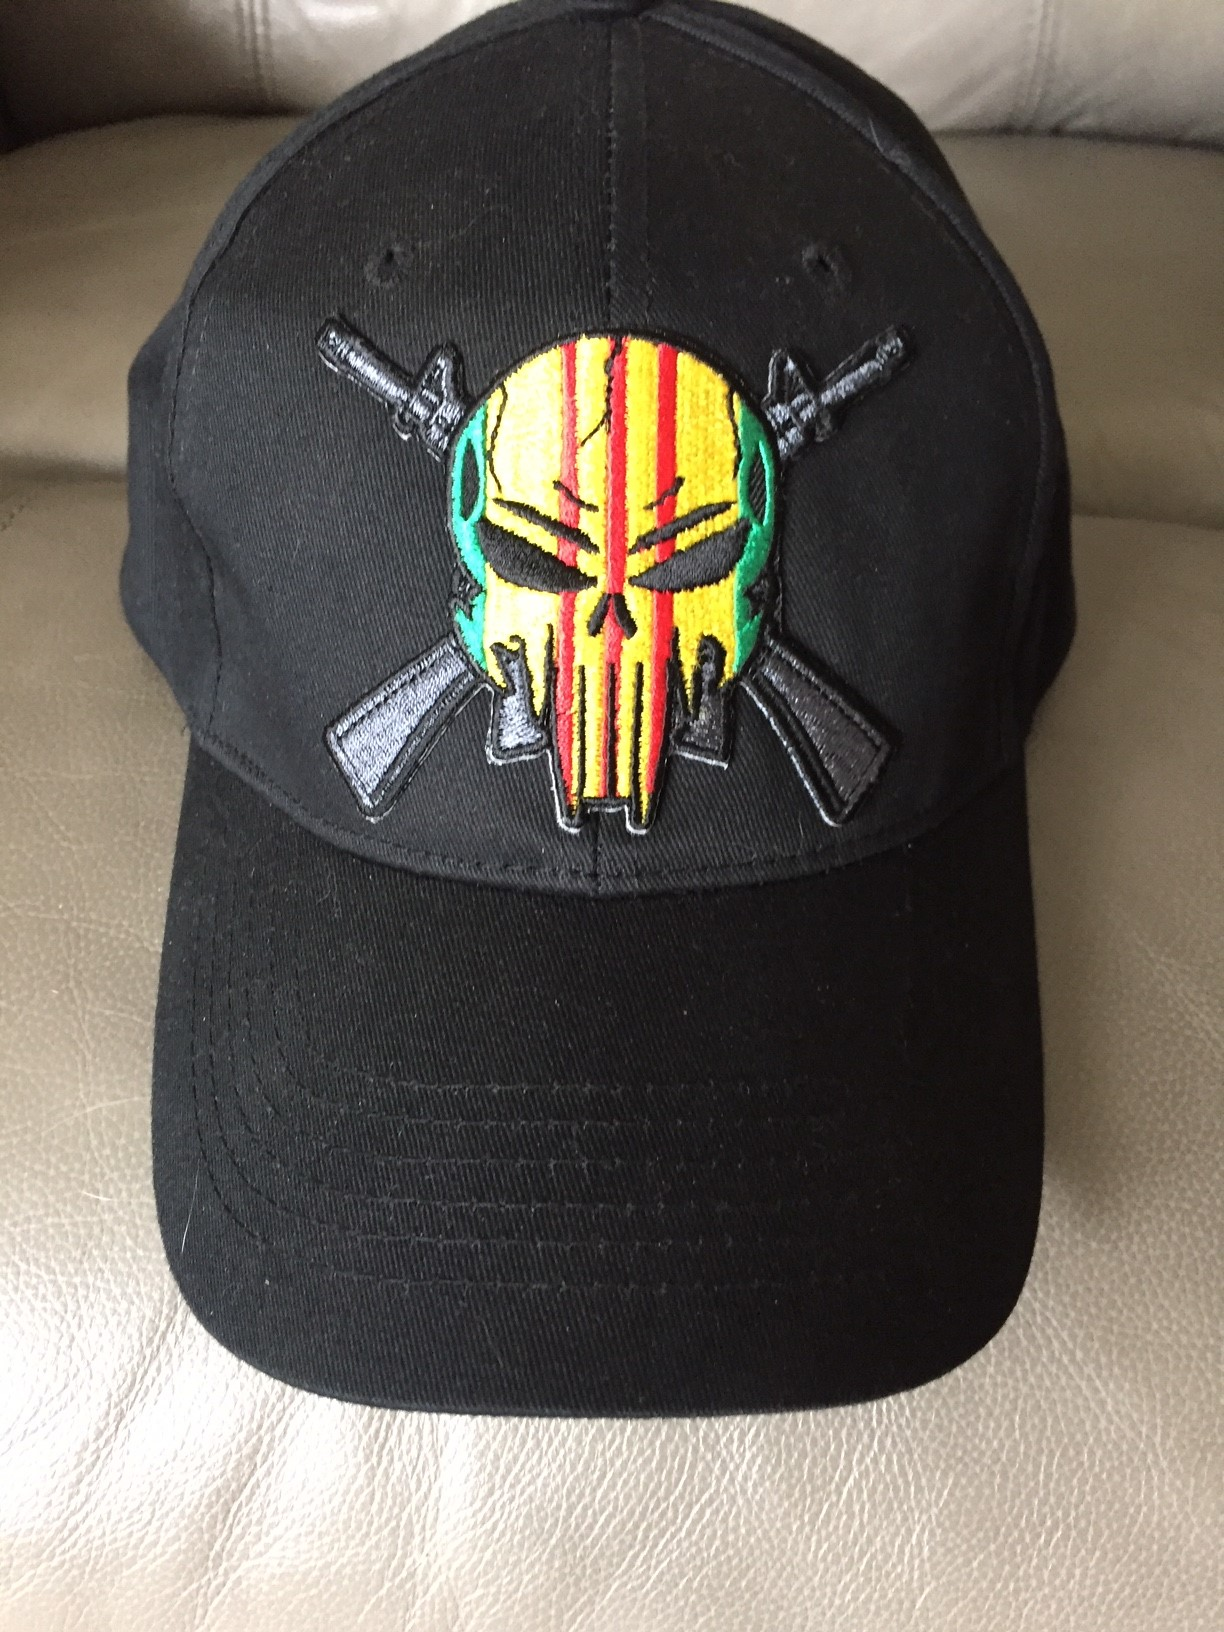 VIETNAM VETERAN PUNISHER CROSSED RIFLES BLACK HAT